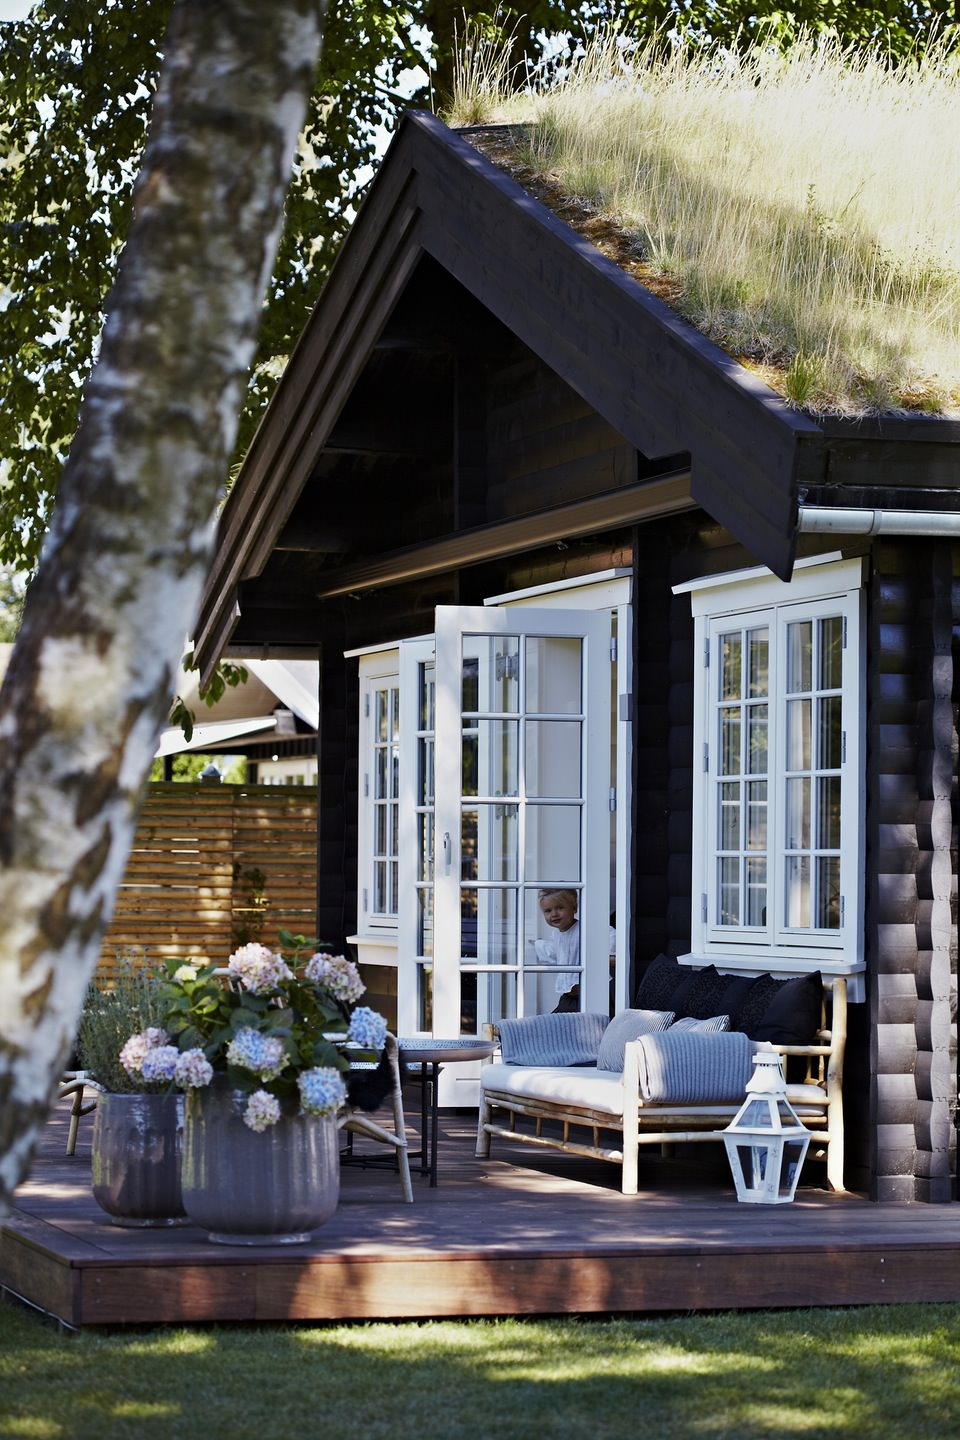 house wood home architecture family window outdoors building wooden bungalow daylight